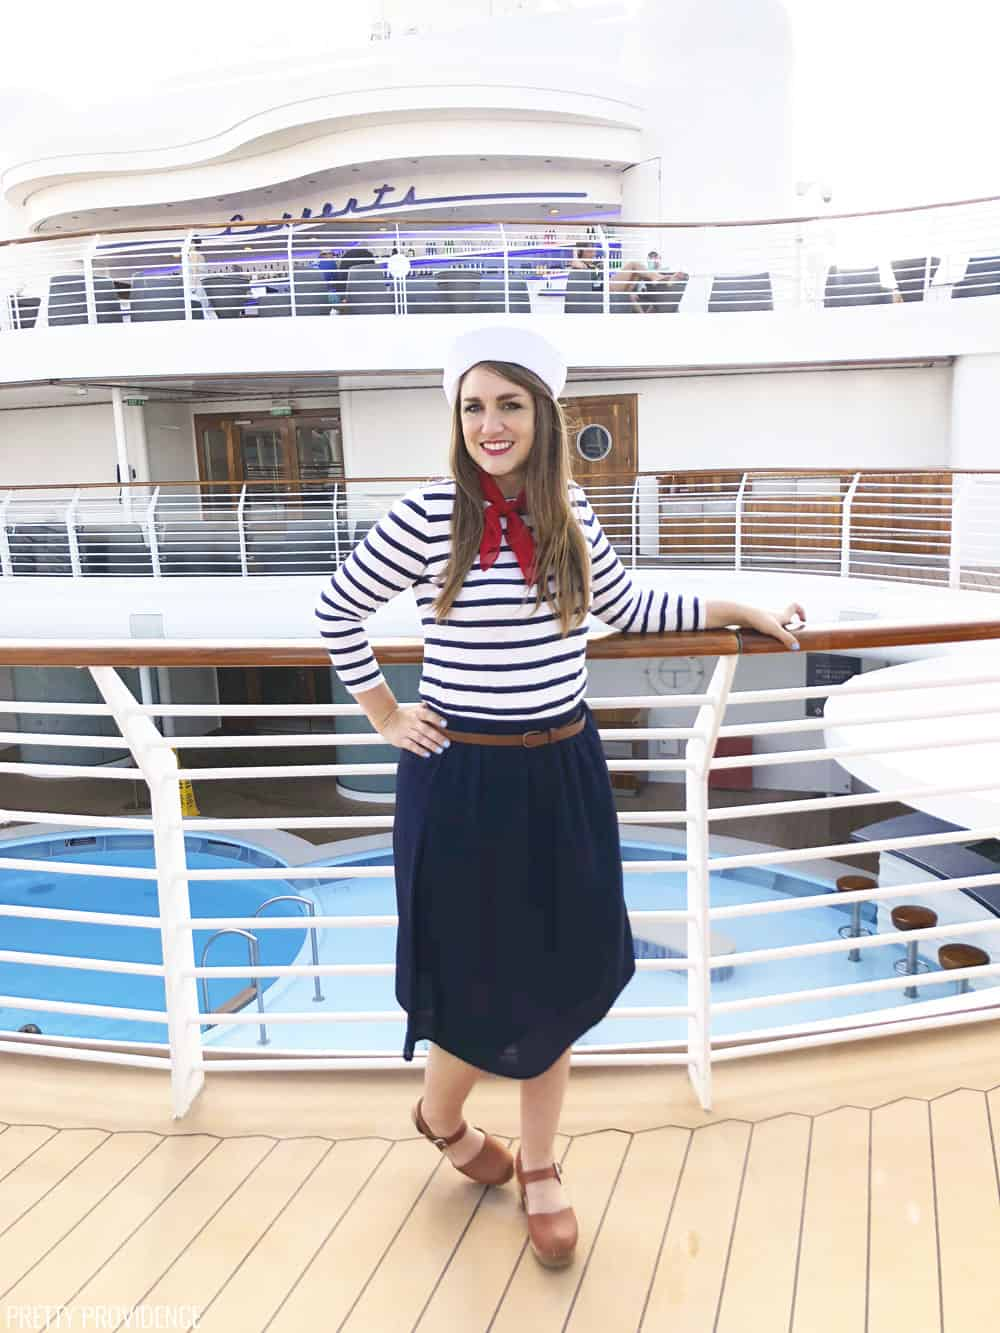 a girl on the deck of a ship posing in a sailor costume